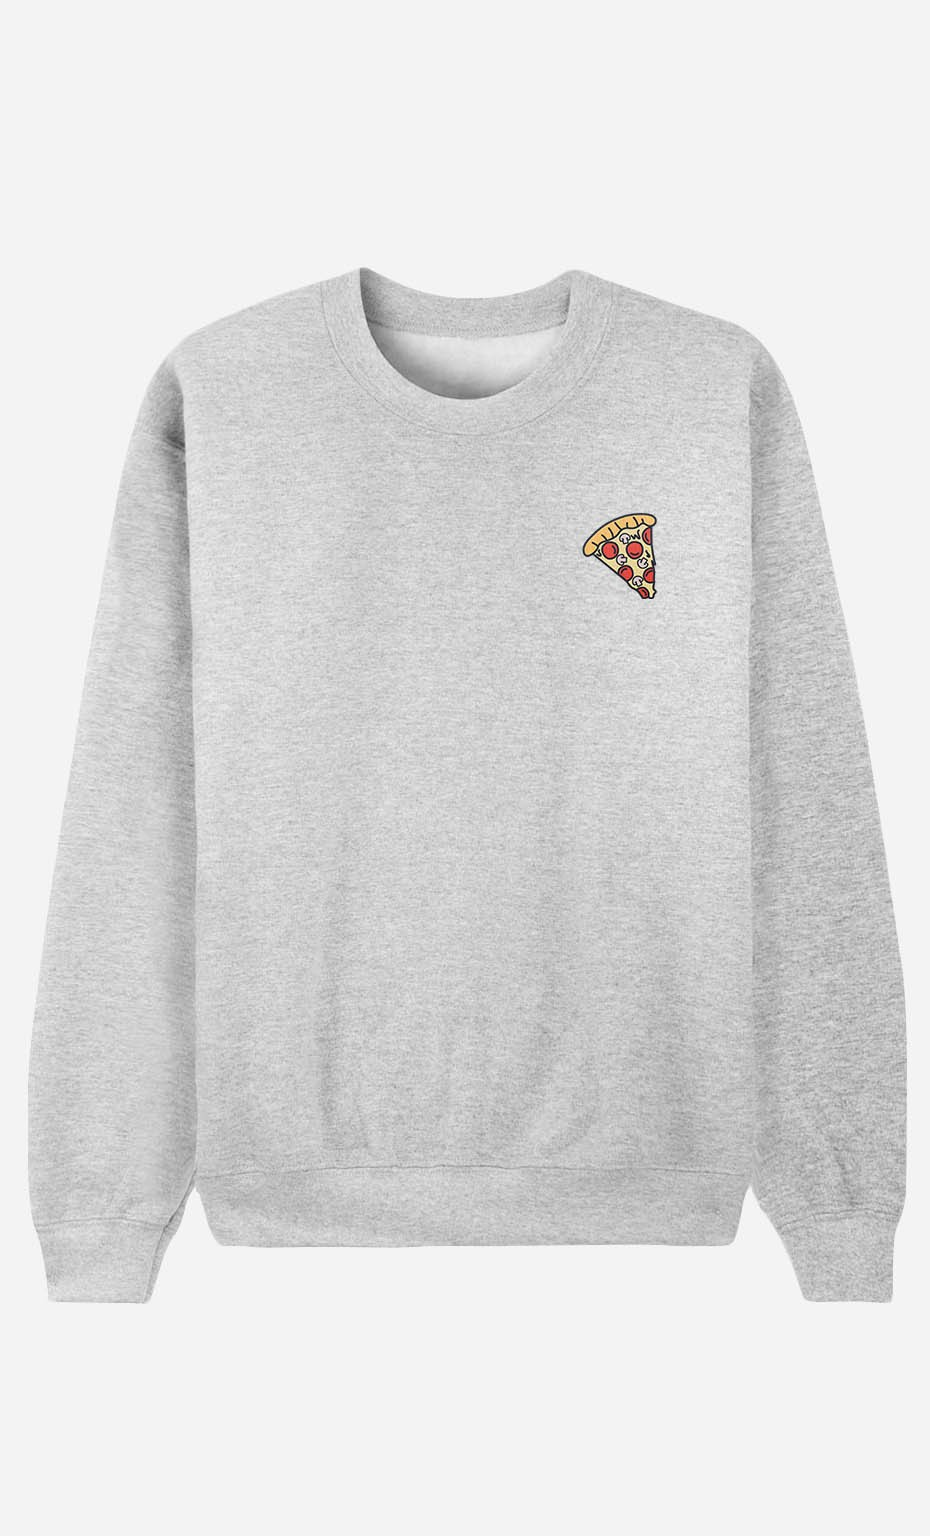 Sweatshirt Pizza - bestickt